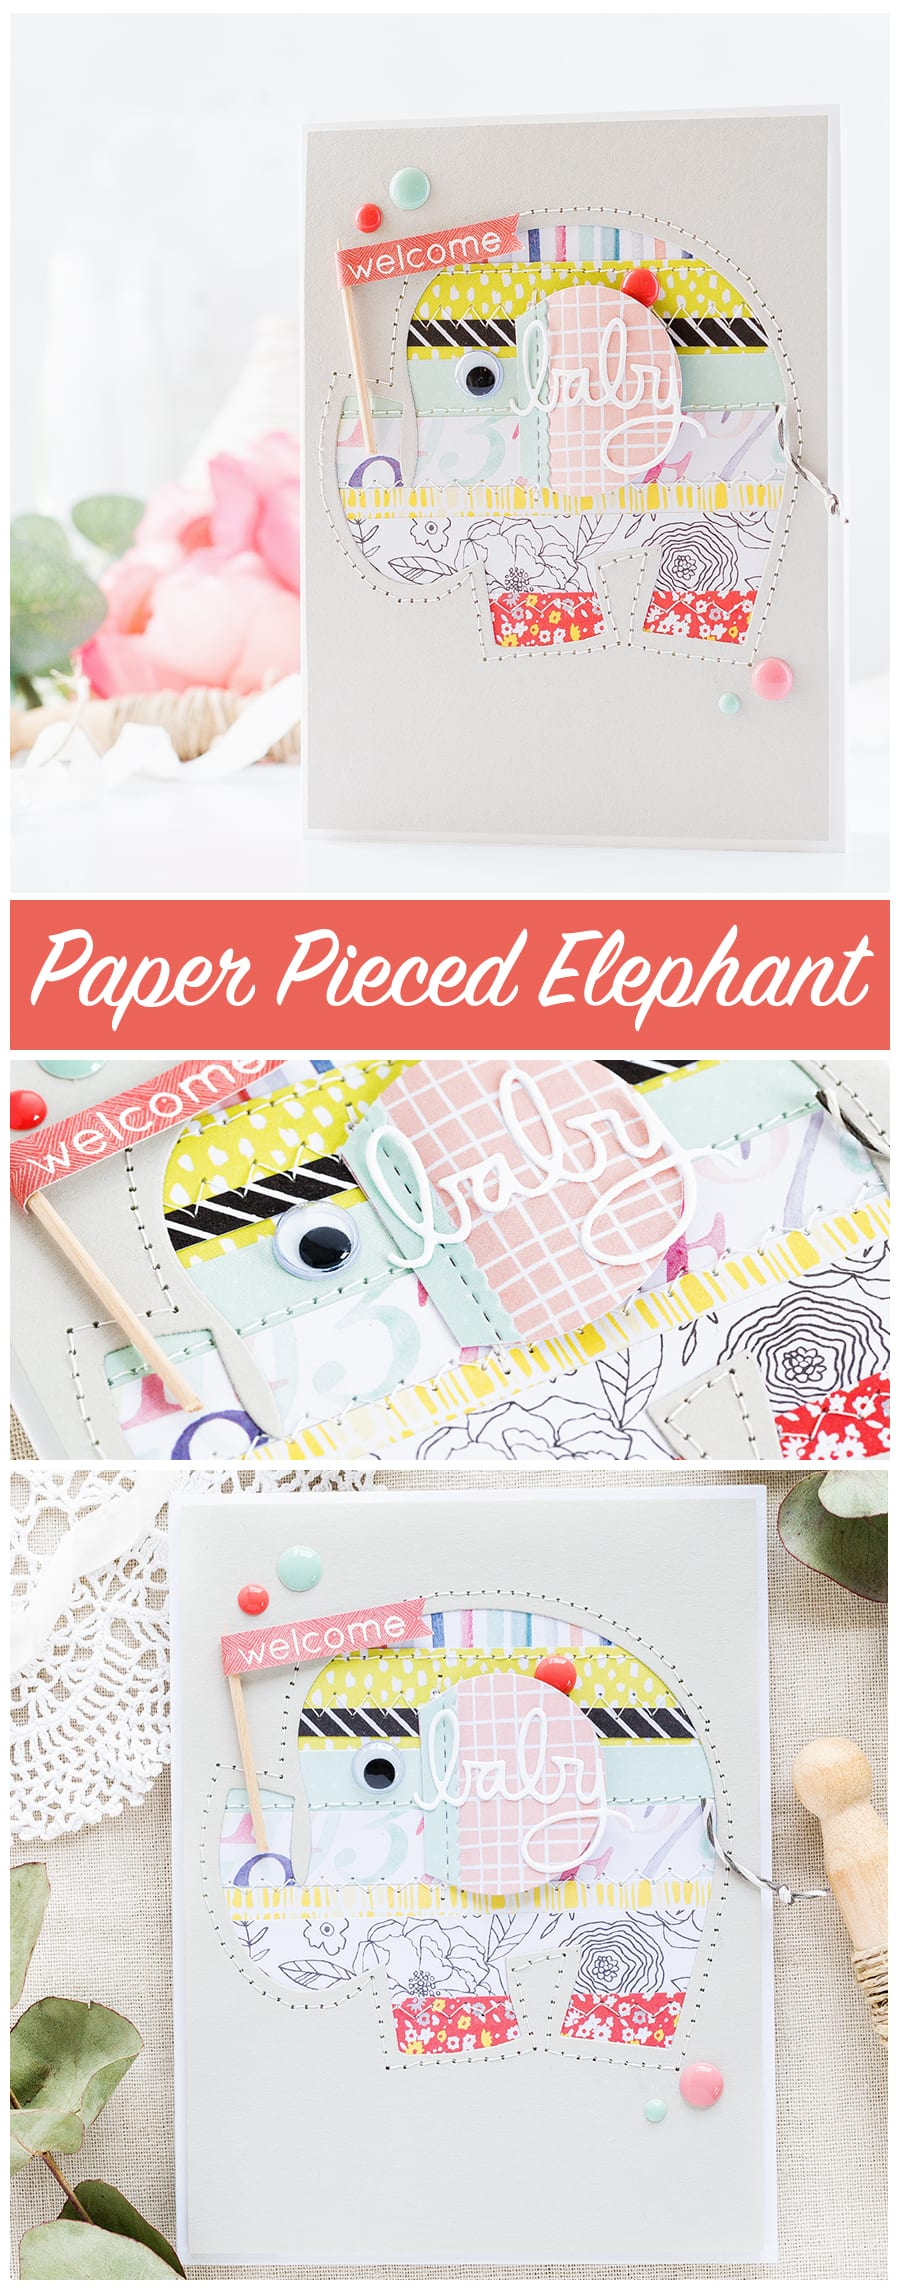 Inspiration series part II by Debby Hughes - negative paper piecing handmade elephant baby card. Find out more http://limedoodledesign.com/2017/06/negative-paper-piecing-inspiration-series-part-ii/